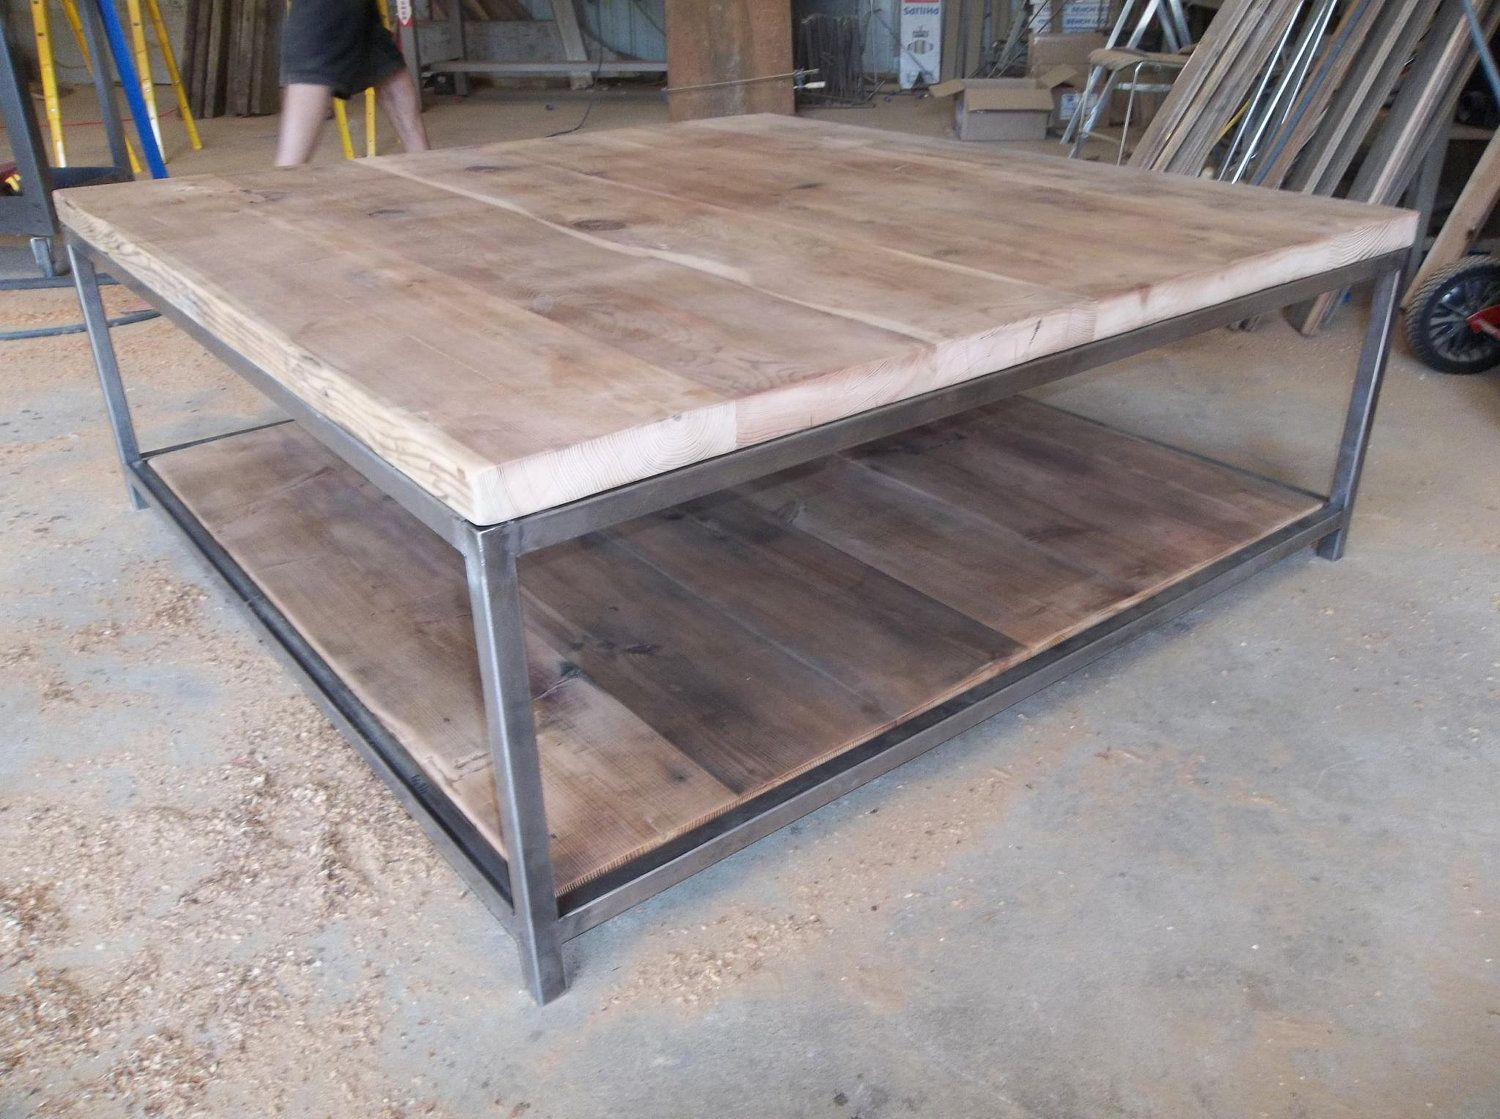 Large Quare Wood Coffee Table With Square Steel Legs Made Of